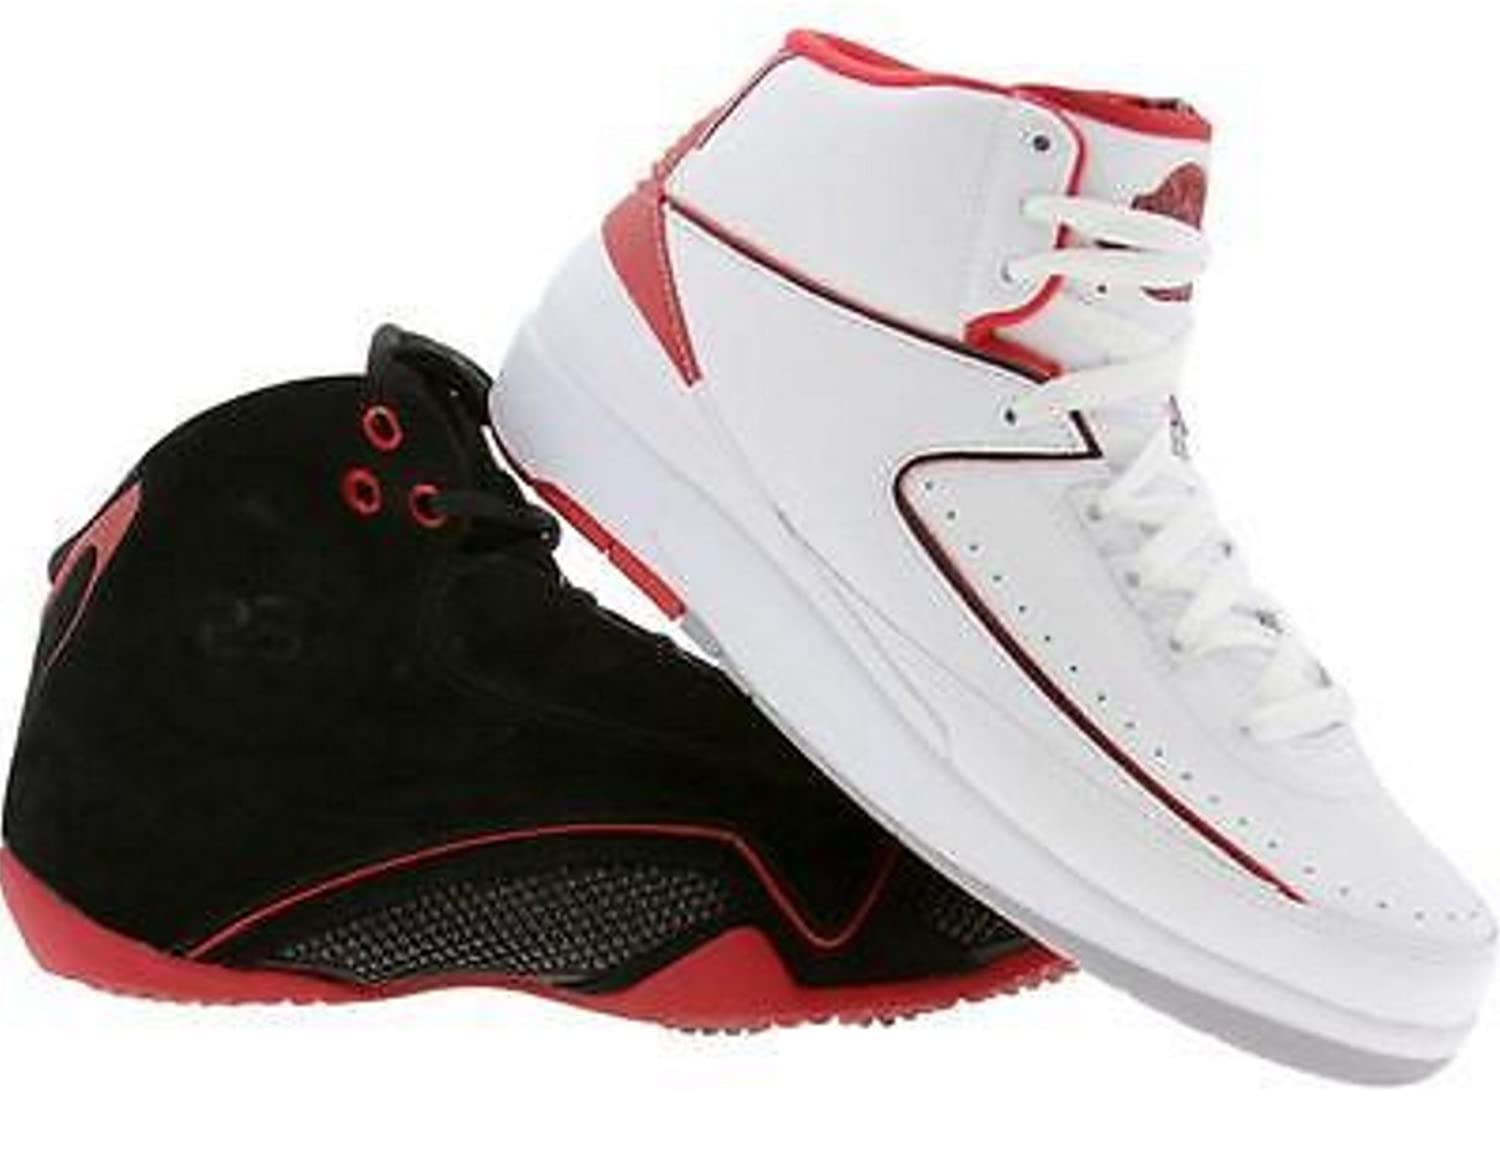 fa624256b33856 outlet Nike Air Jordan RETRO Collezione CDP Countdown Pack 21 2 XXI II  323943-993